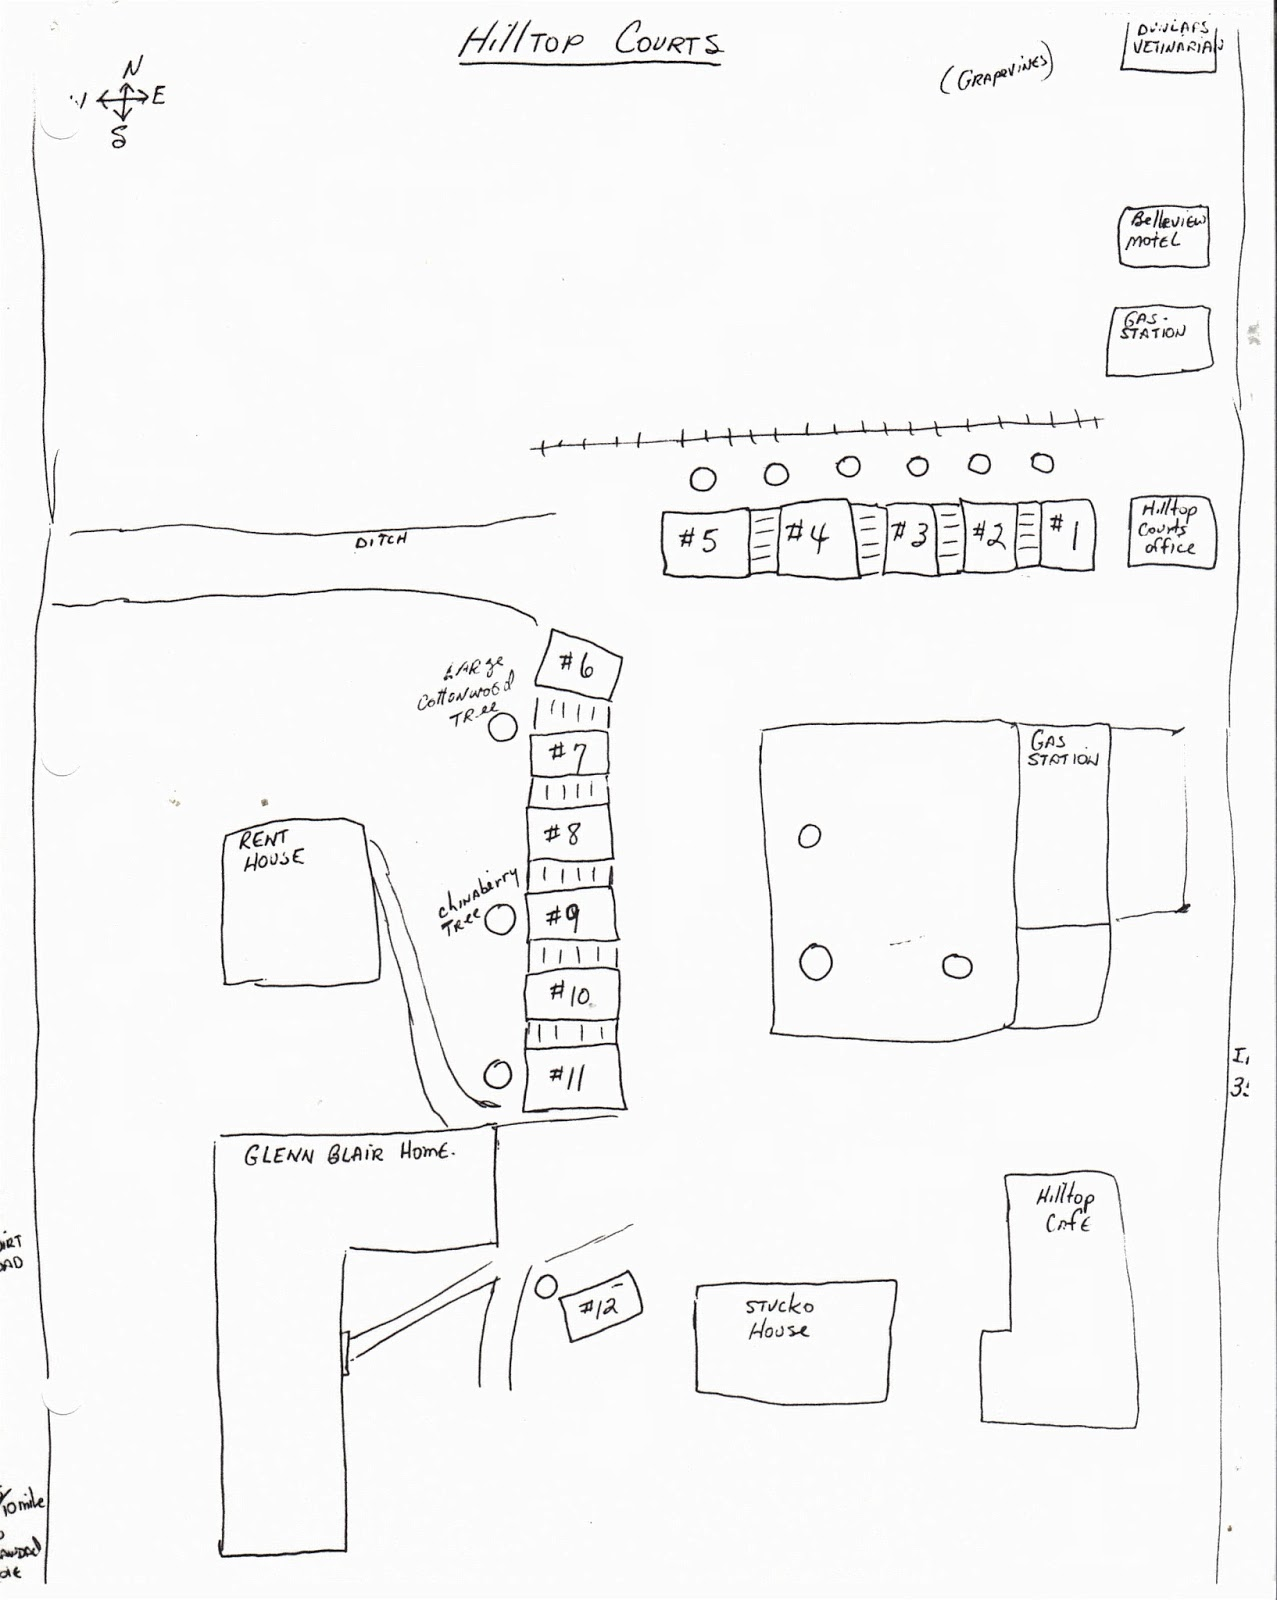 Quick drawing of the general hill top courts area belton texas drawn by billy blair top of map faces north